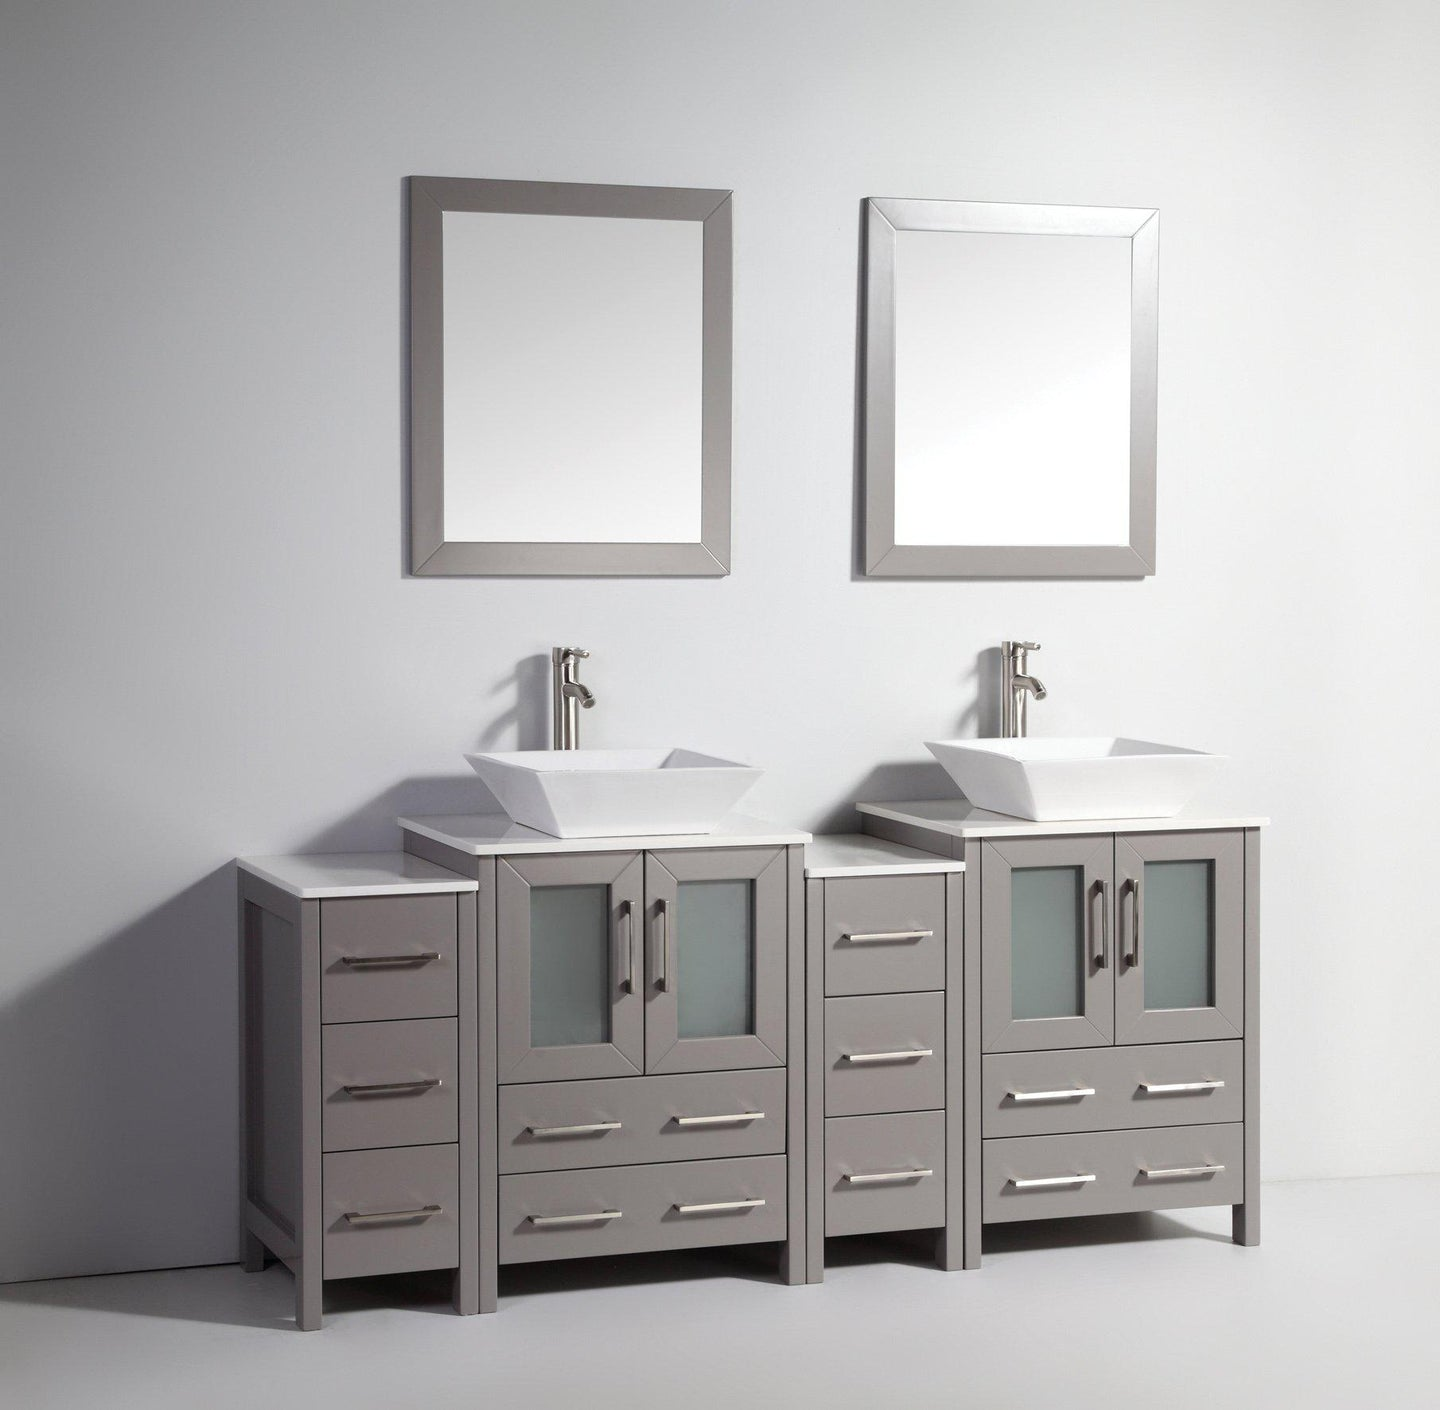 Ravenna 72 in. W x 18.5 in. D x 36 in. H Bathroom Vanity in Grey with Double Basin Top in White Ceramic and Mirrors